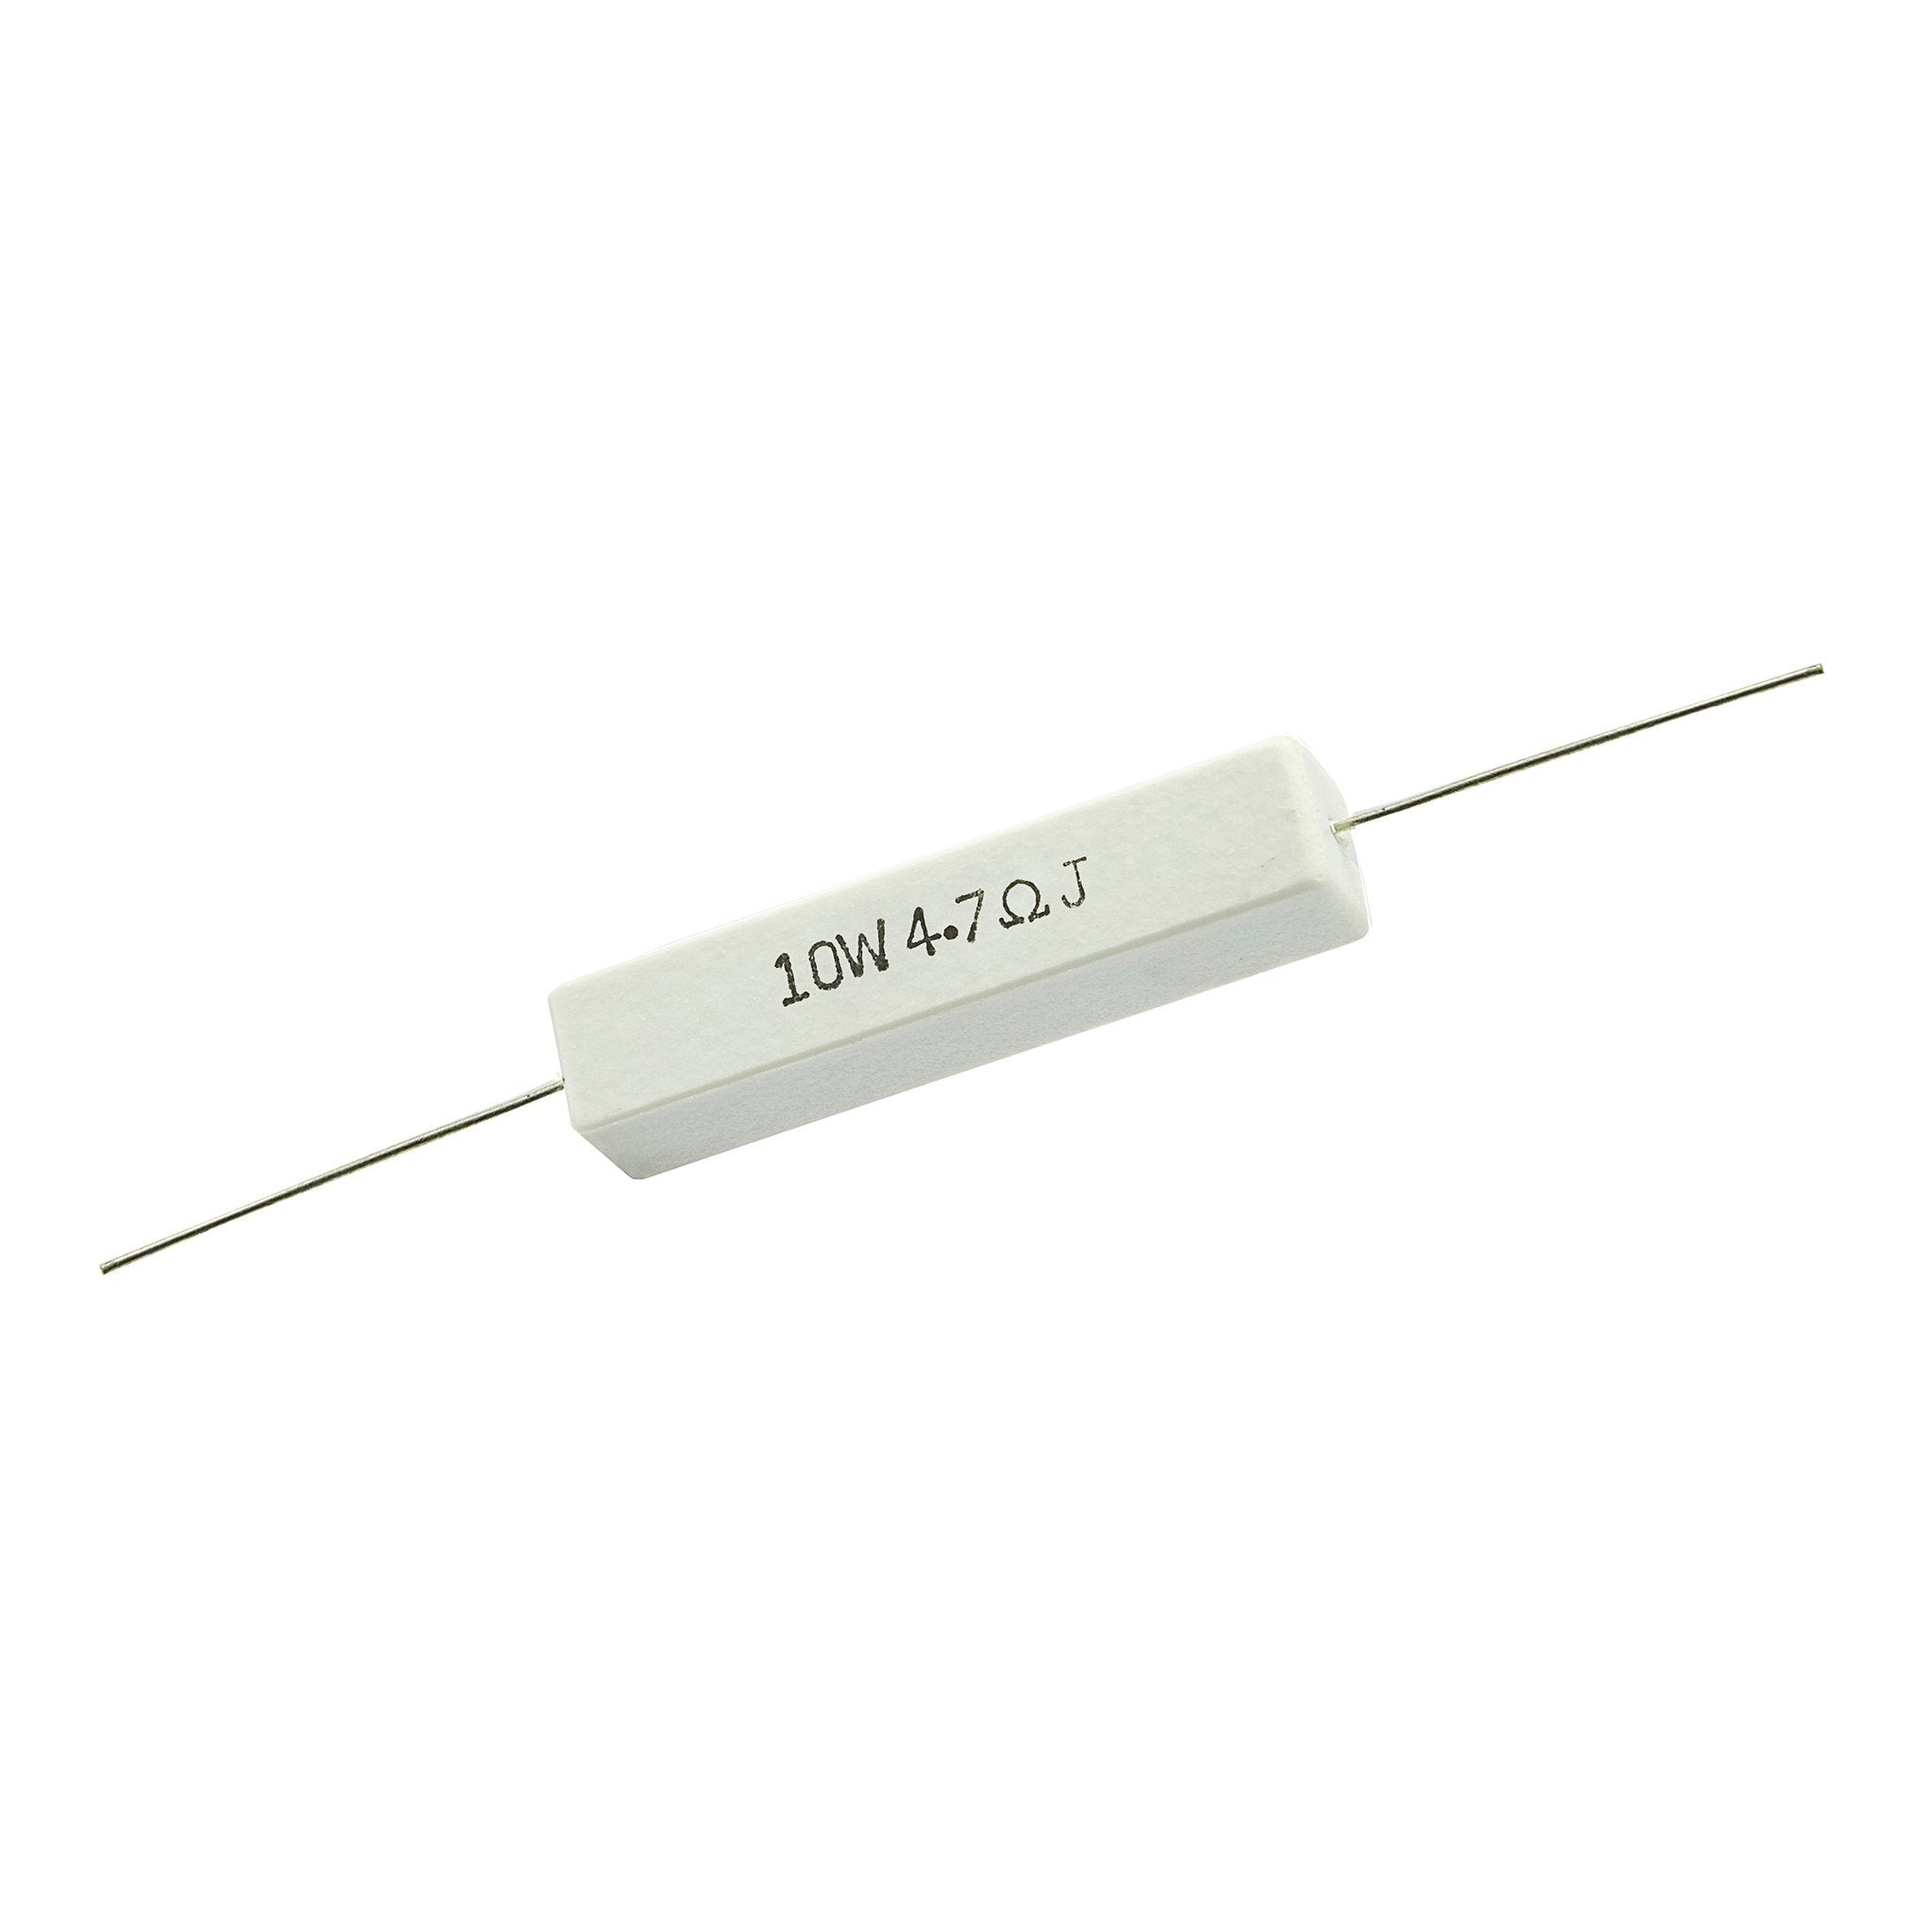 4.7 Ohm 10 Watt 5% Ceramic Wirewound Resistor - Willys-Hifi Ltd